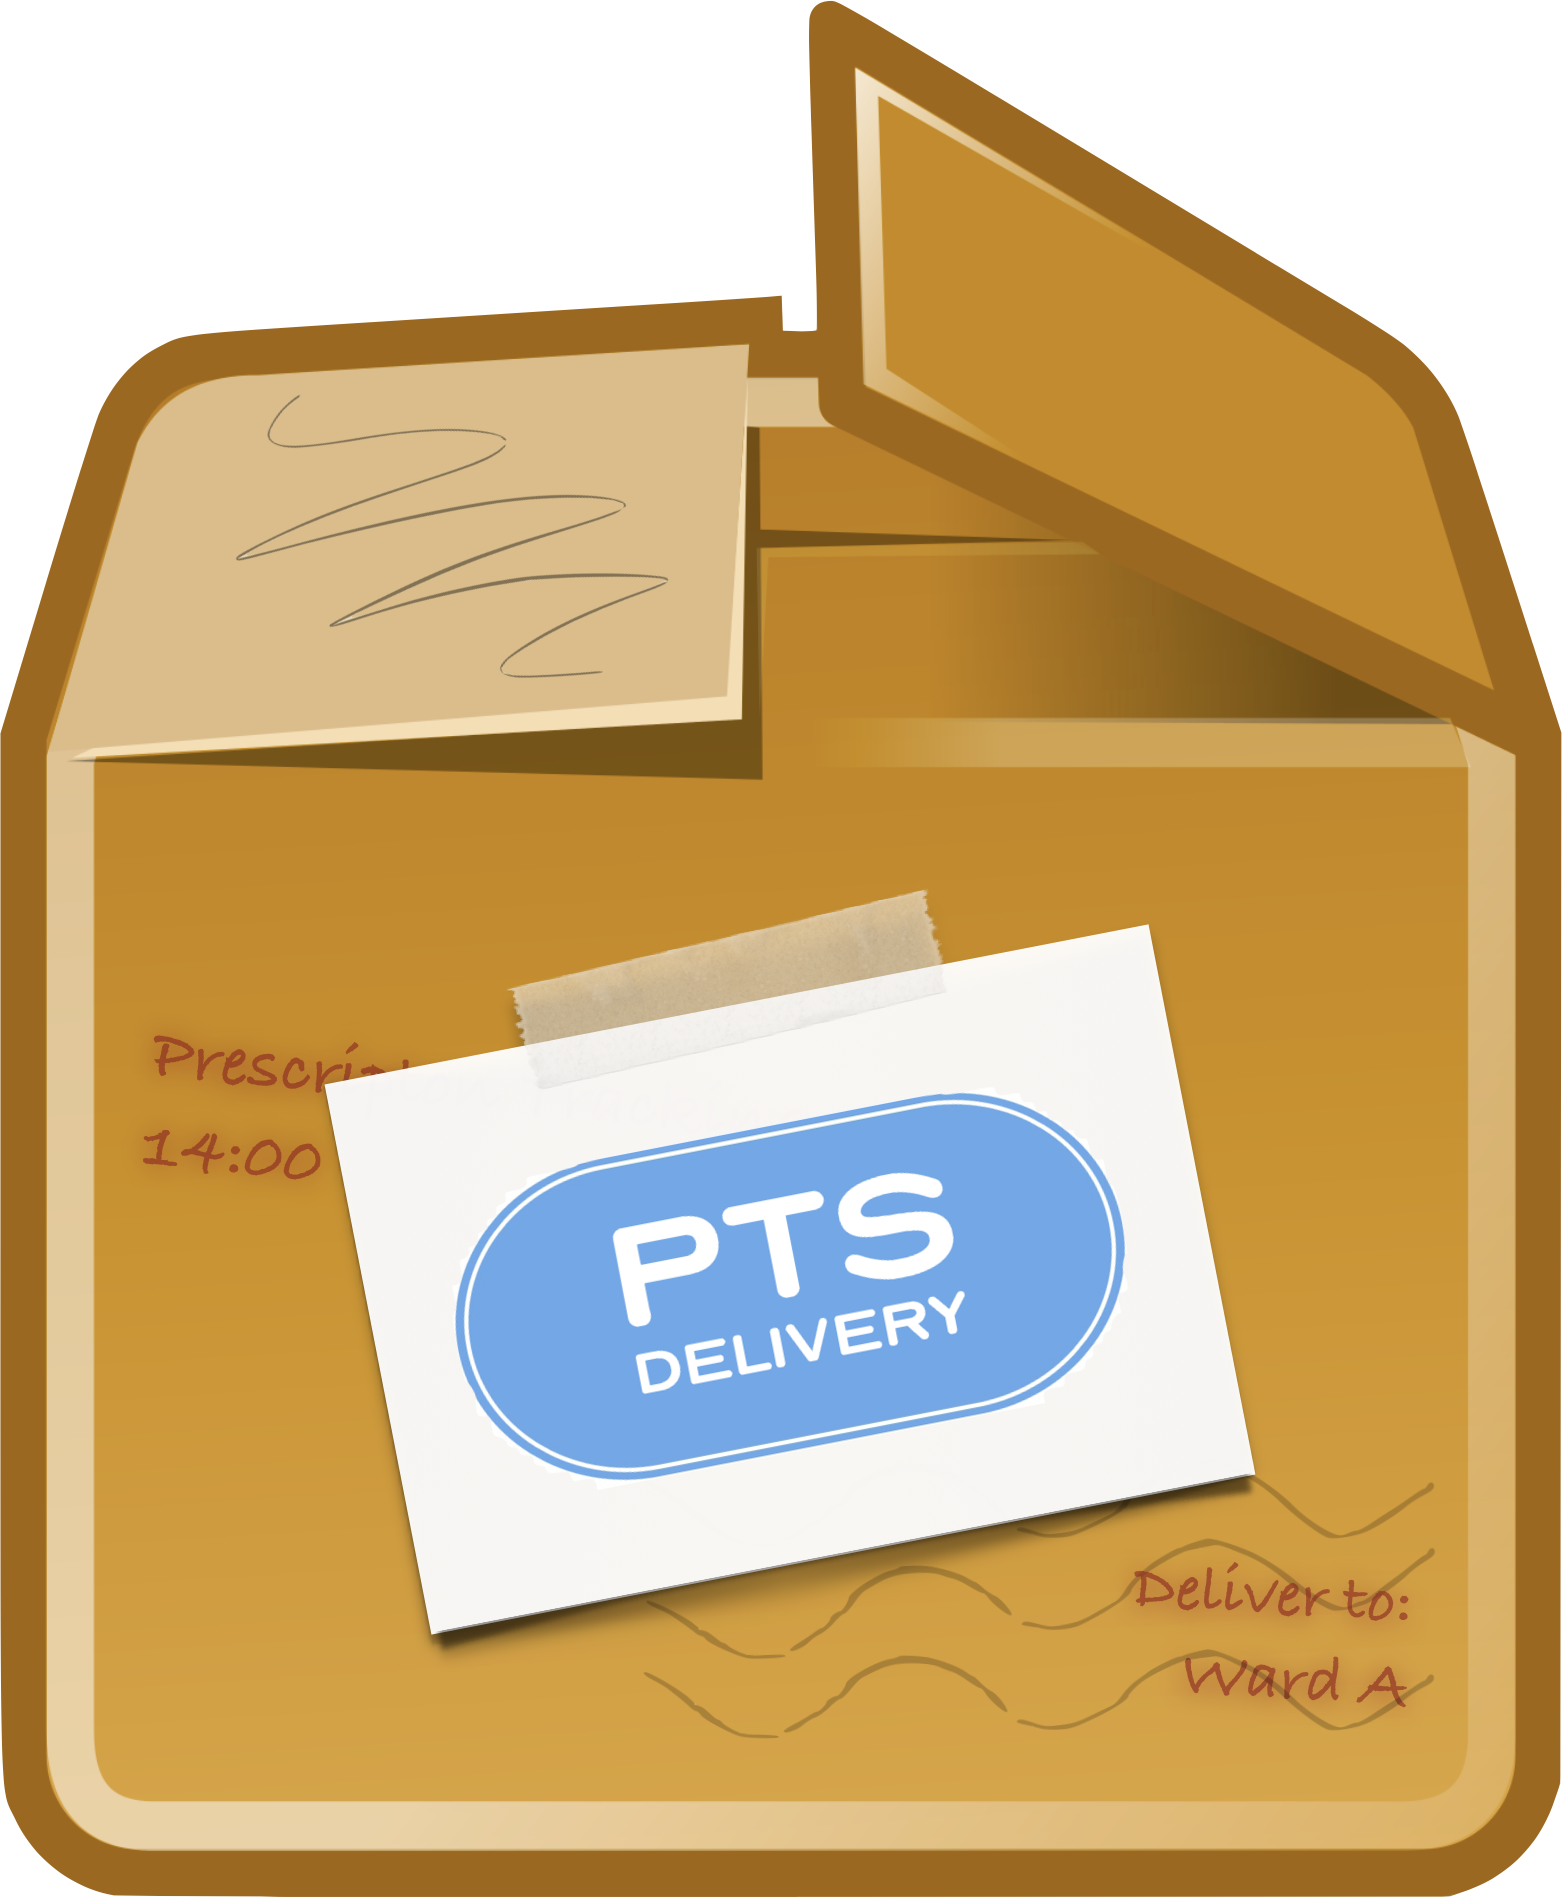 PTS Delivery Tracking